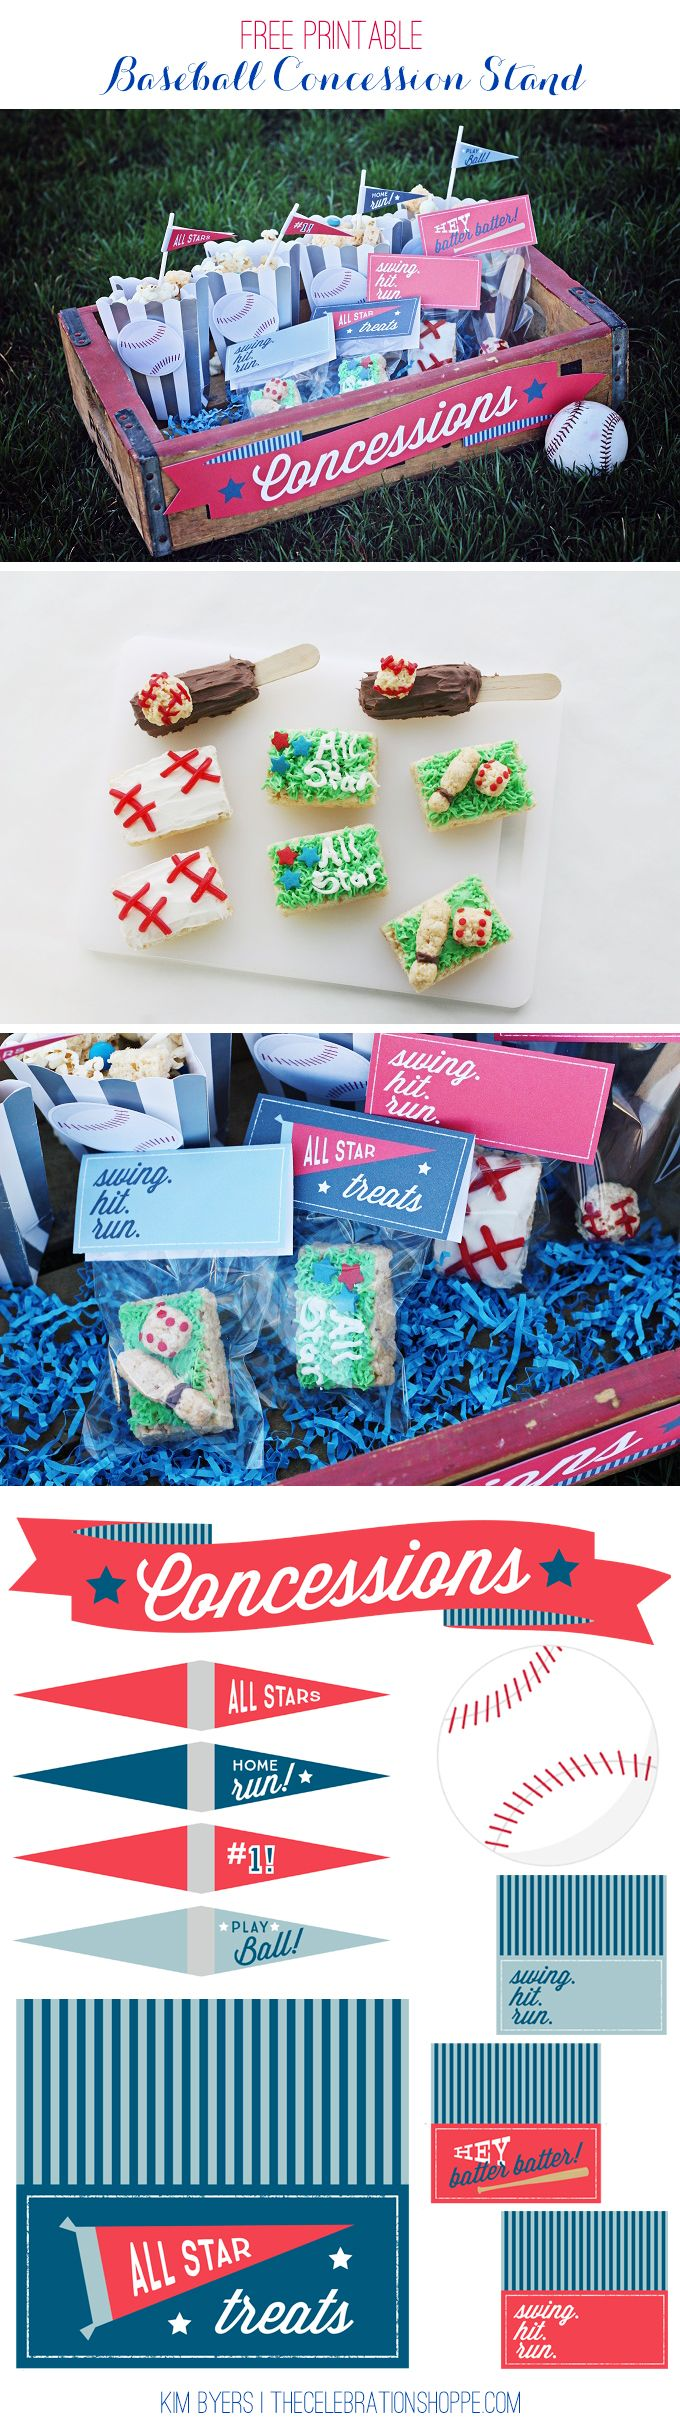 All Star Baseball Party Free Printables | Cute Concessions Stand Ideas - Kim Byers